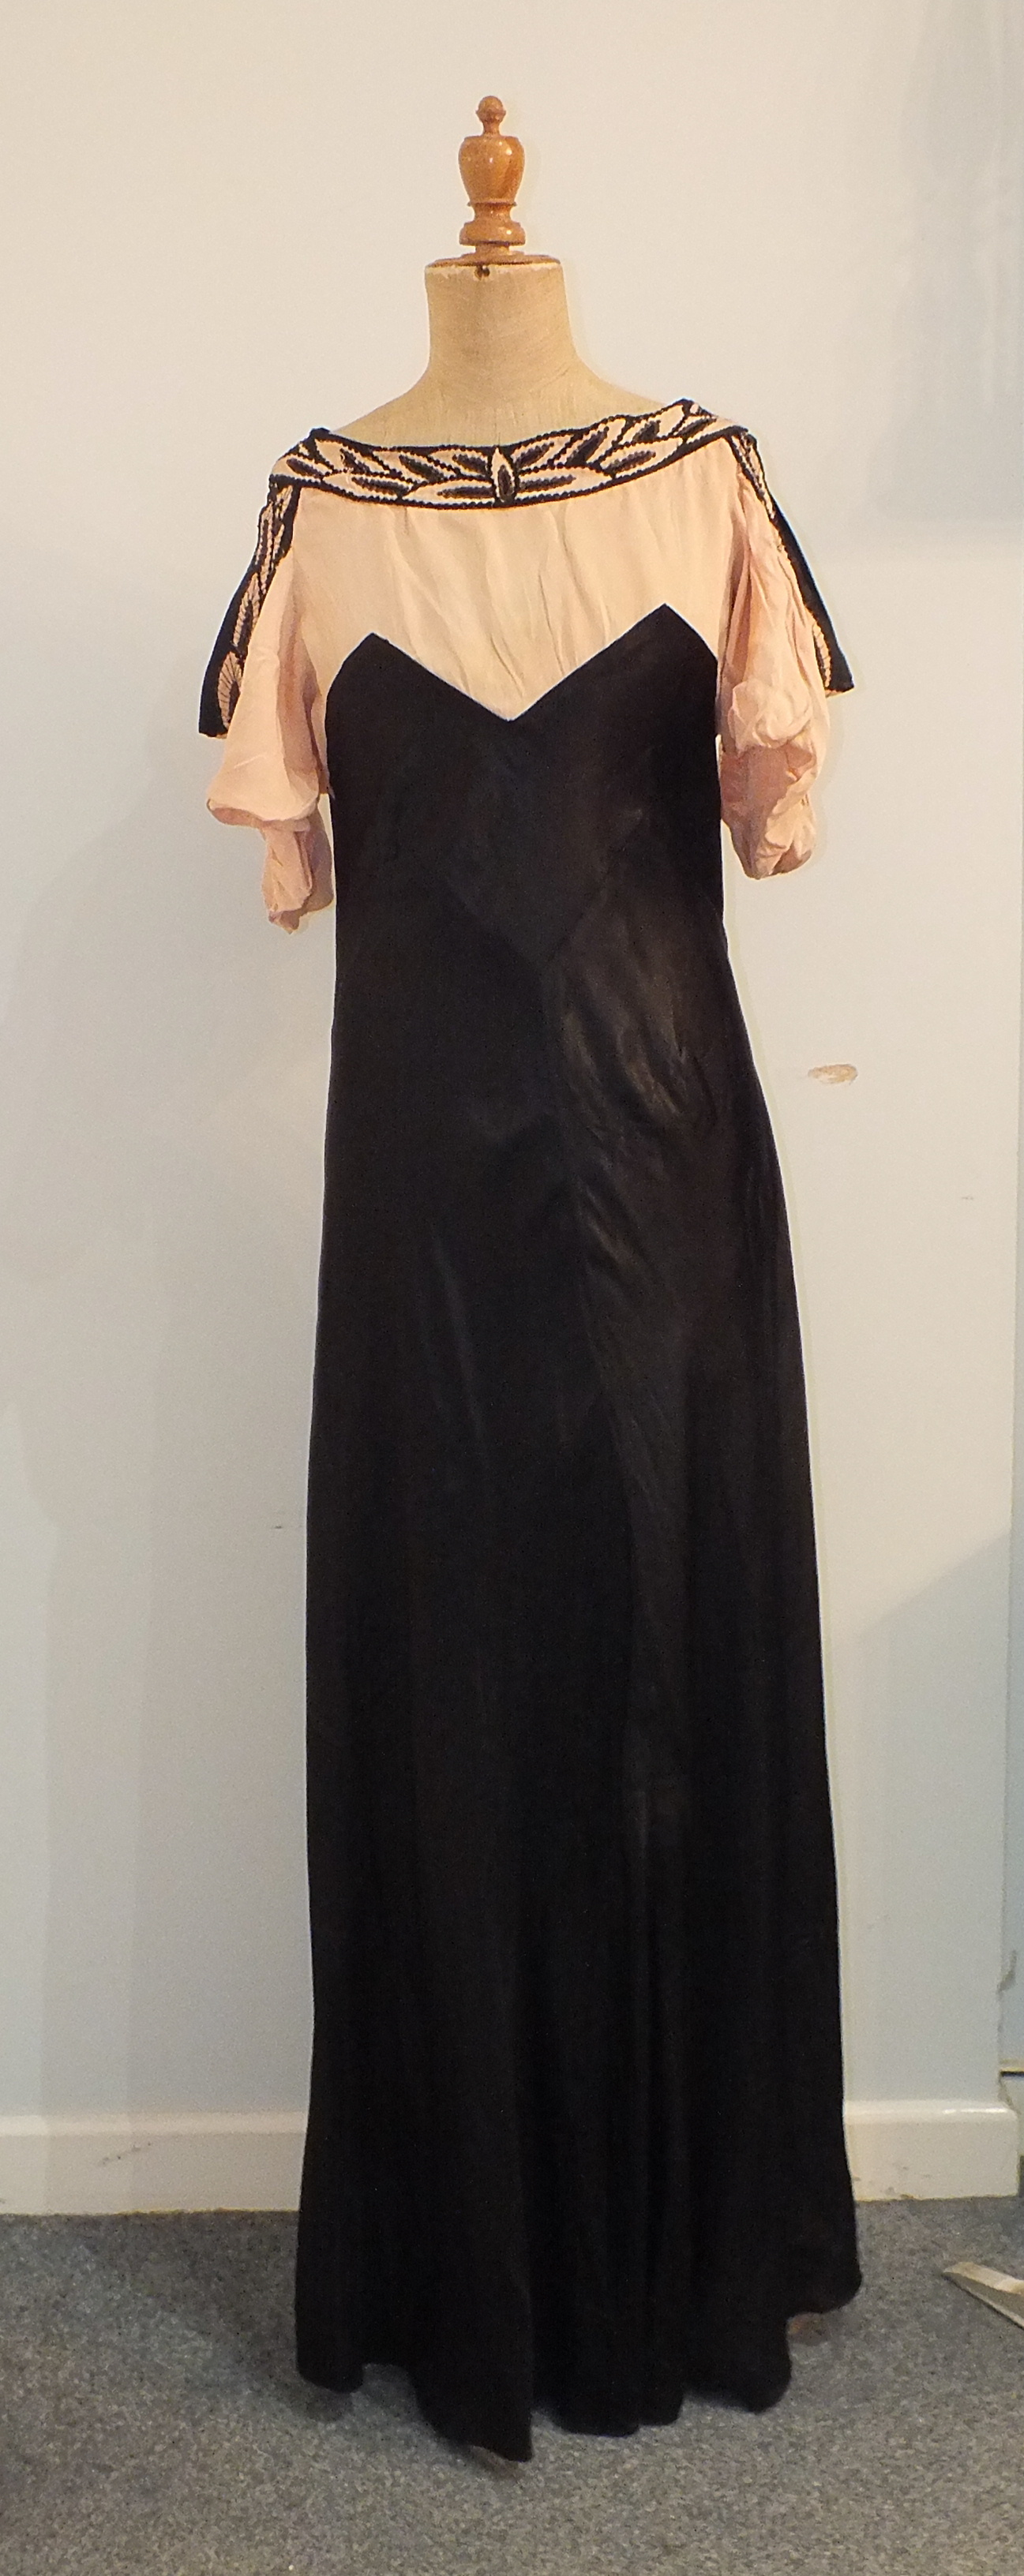 Five 1930's/1940's evening dresses including a black and white printed silk chiffon dress with black - Image 6 of 6